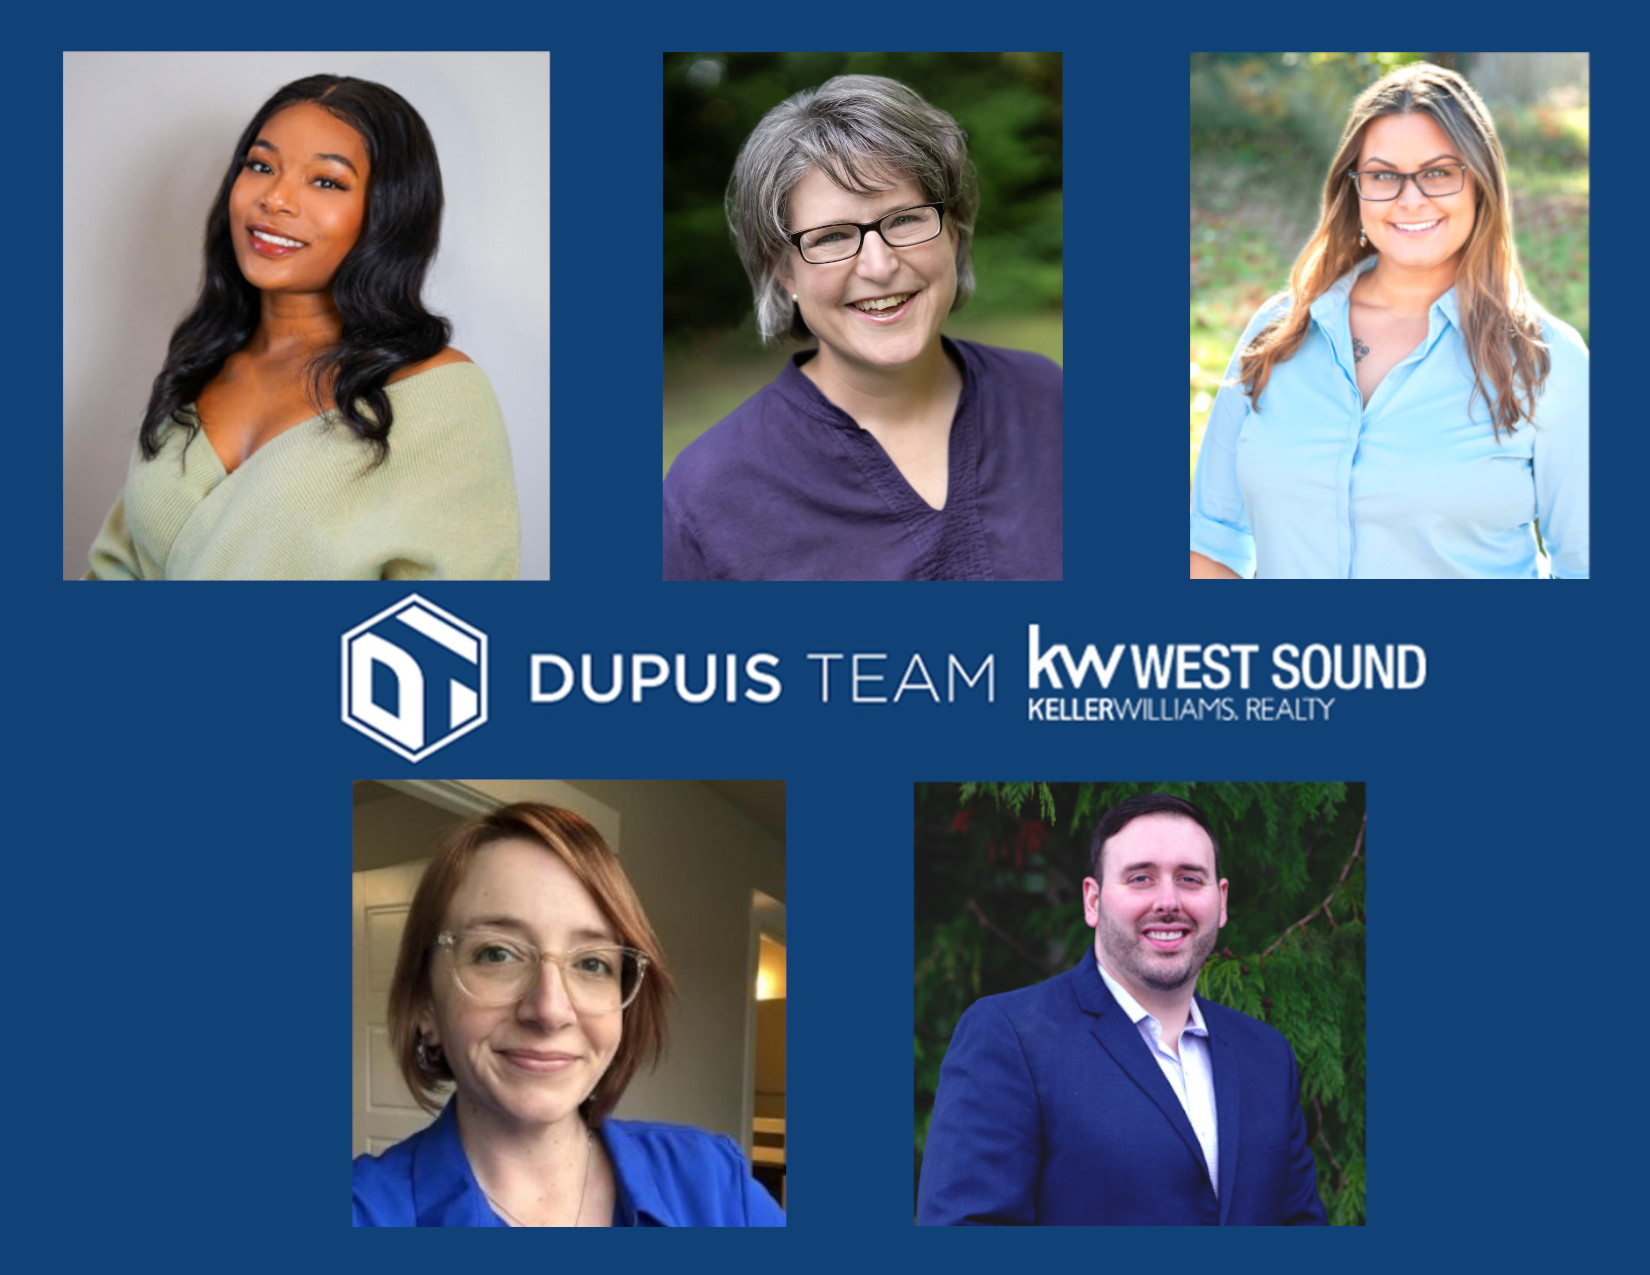 Dupuis Team is here to serve you!